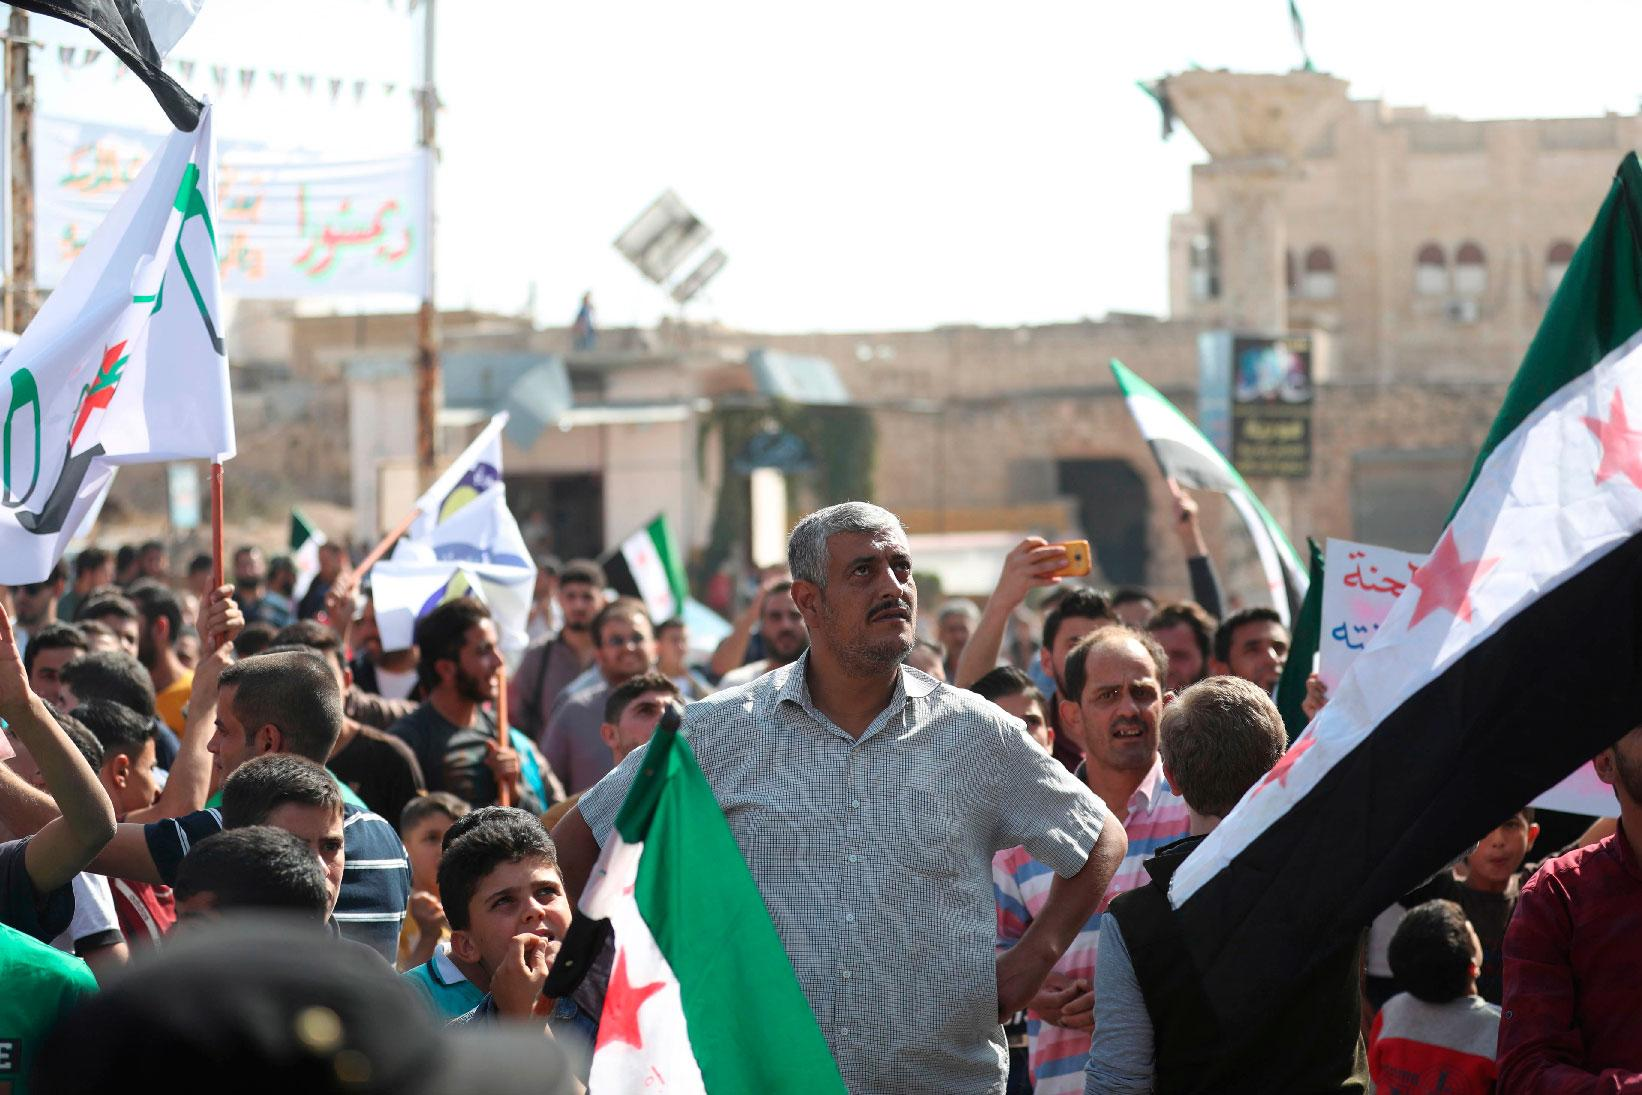 Bahr Nahhas (C) attends a demonstration in the rebel-held town of Maaret al-Numan, in the north of Idlib province on October 19, 2018.